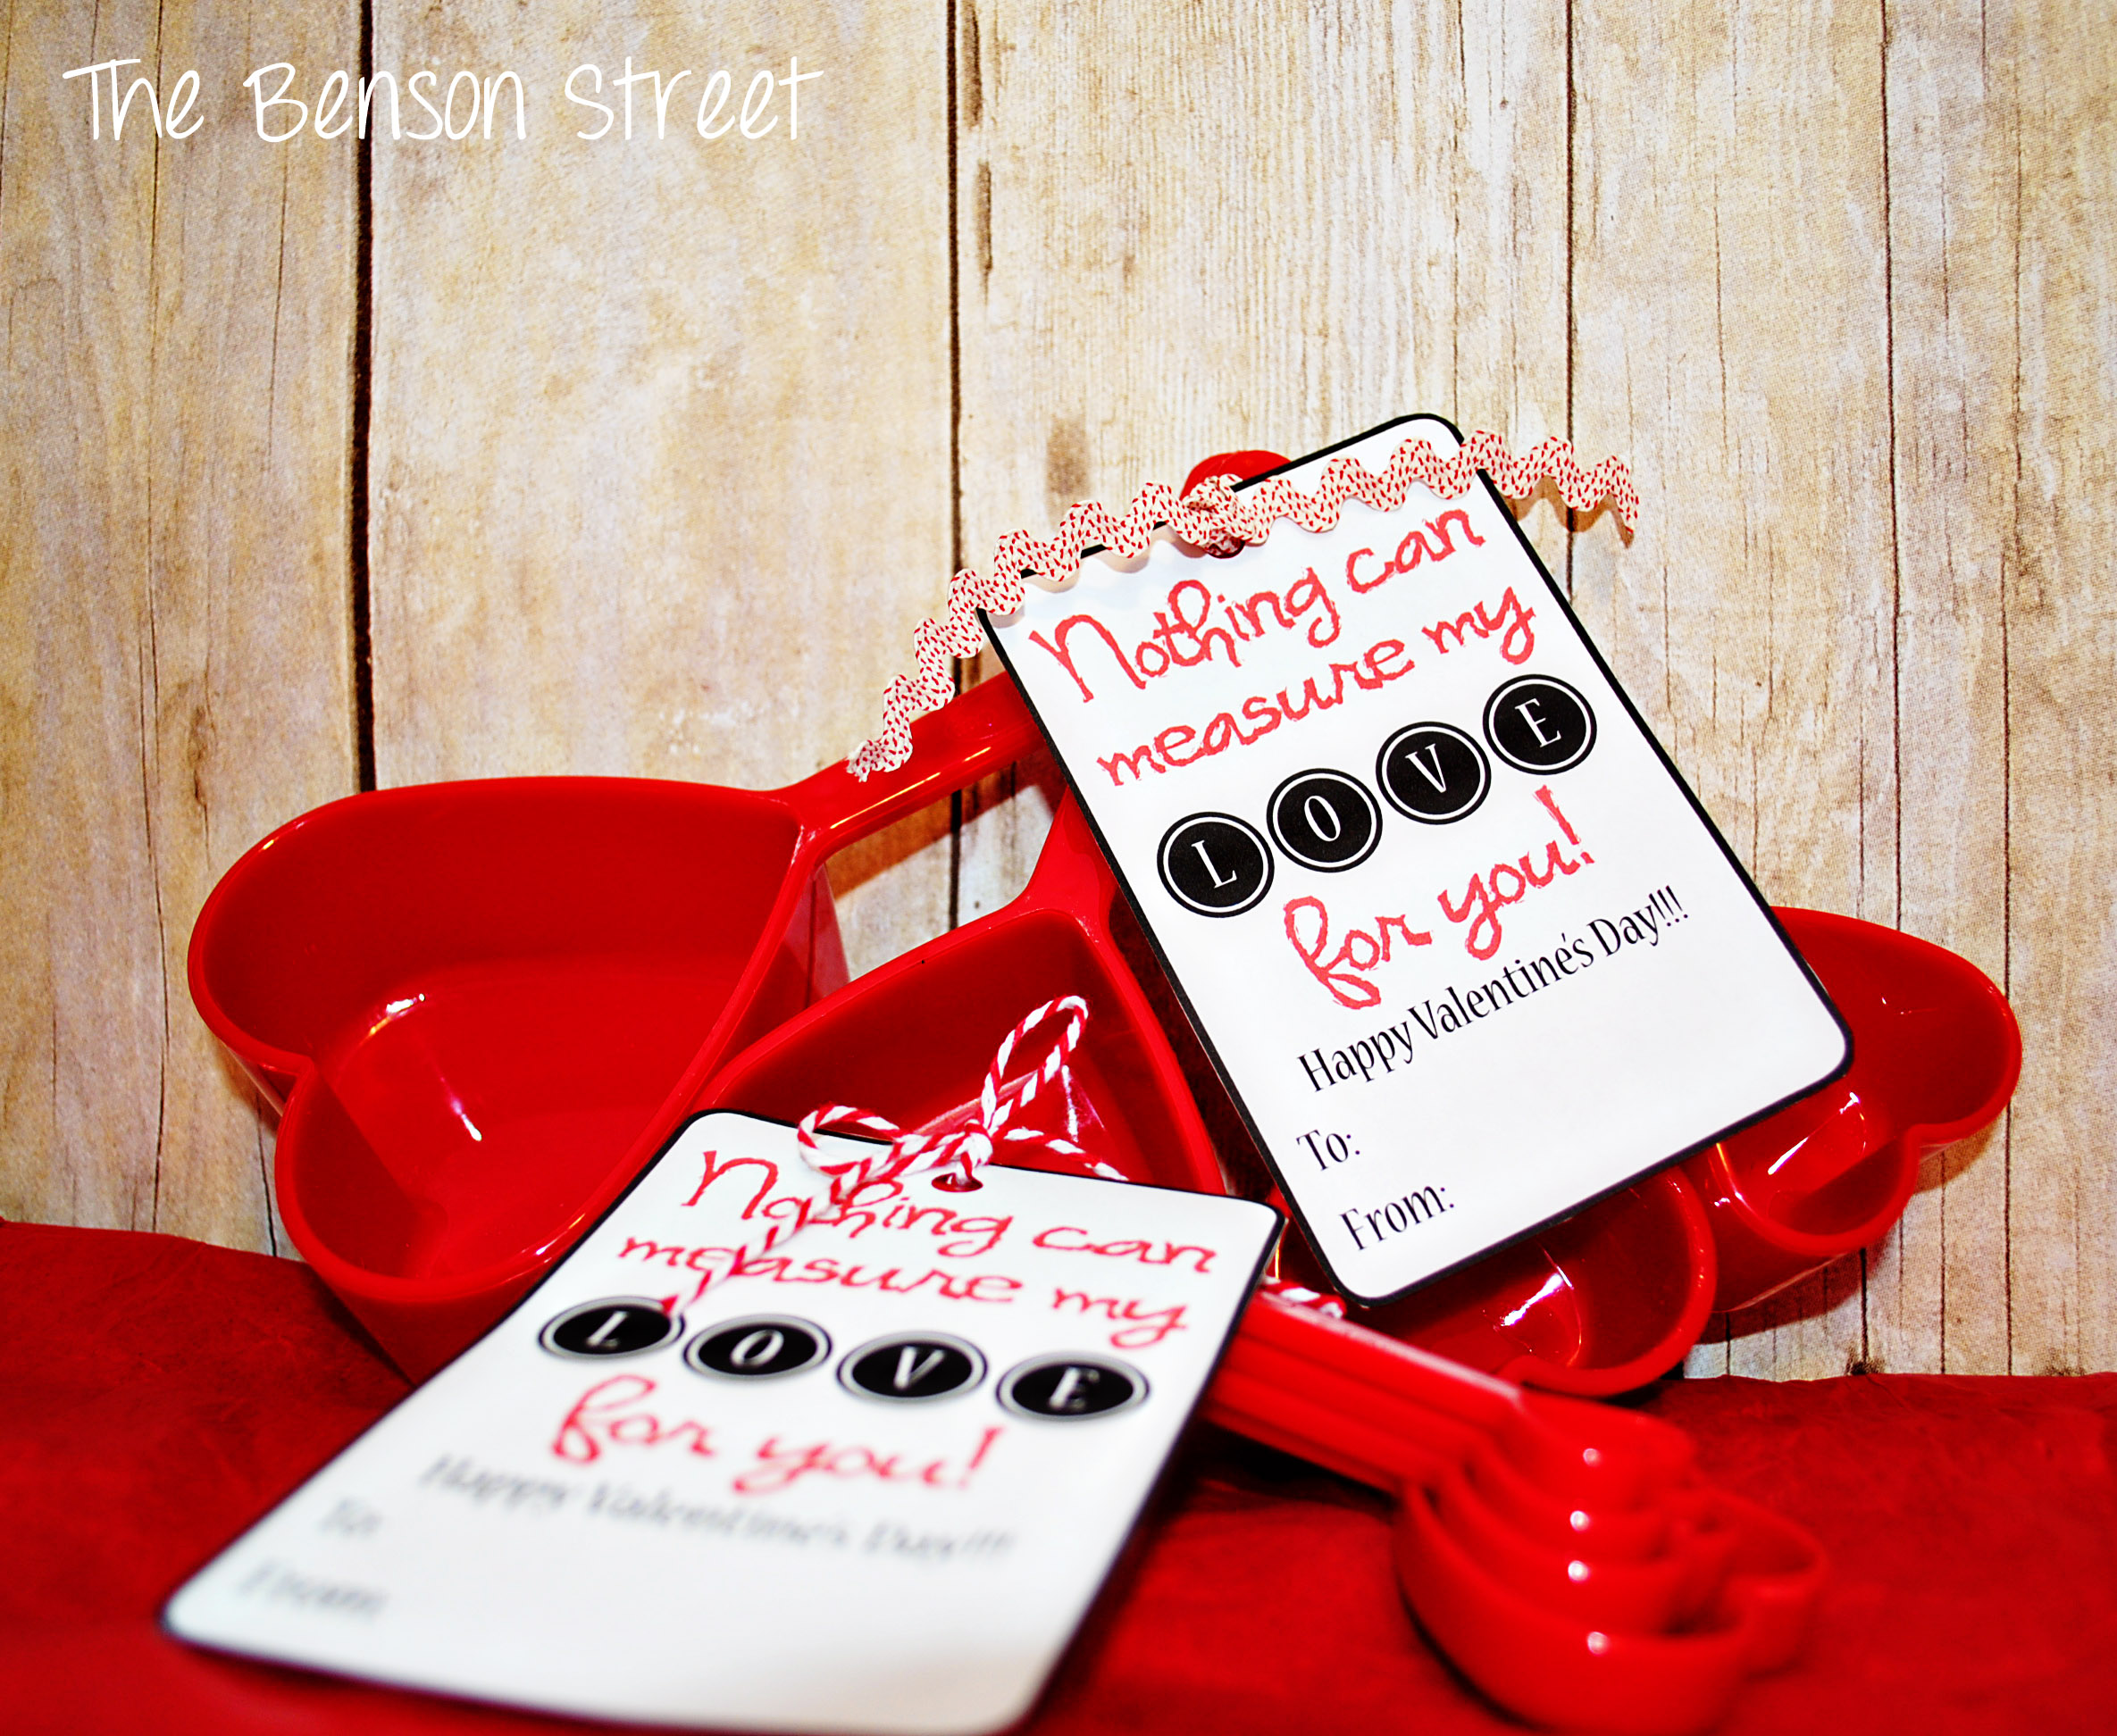 Measuring Cups Valentine At The Benson Street2 ...